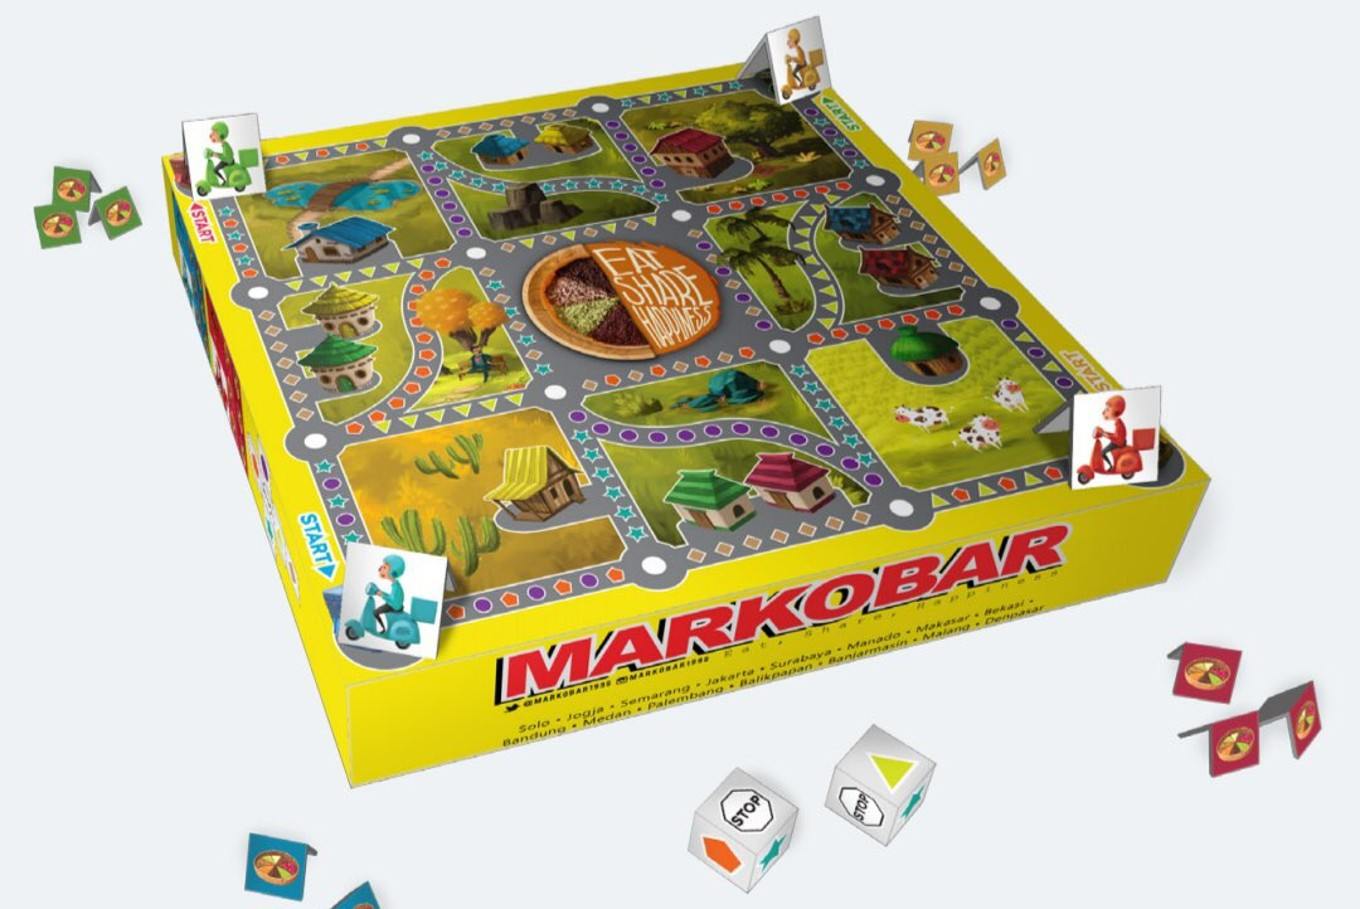 Markobar welcomes Independence Day with board game packaging